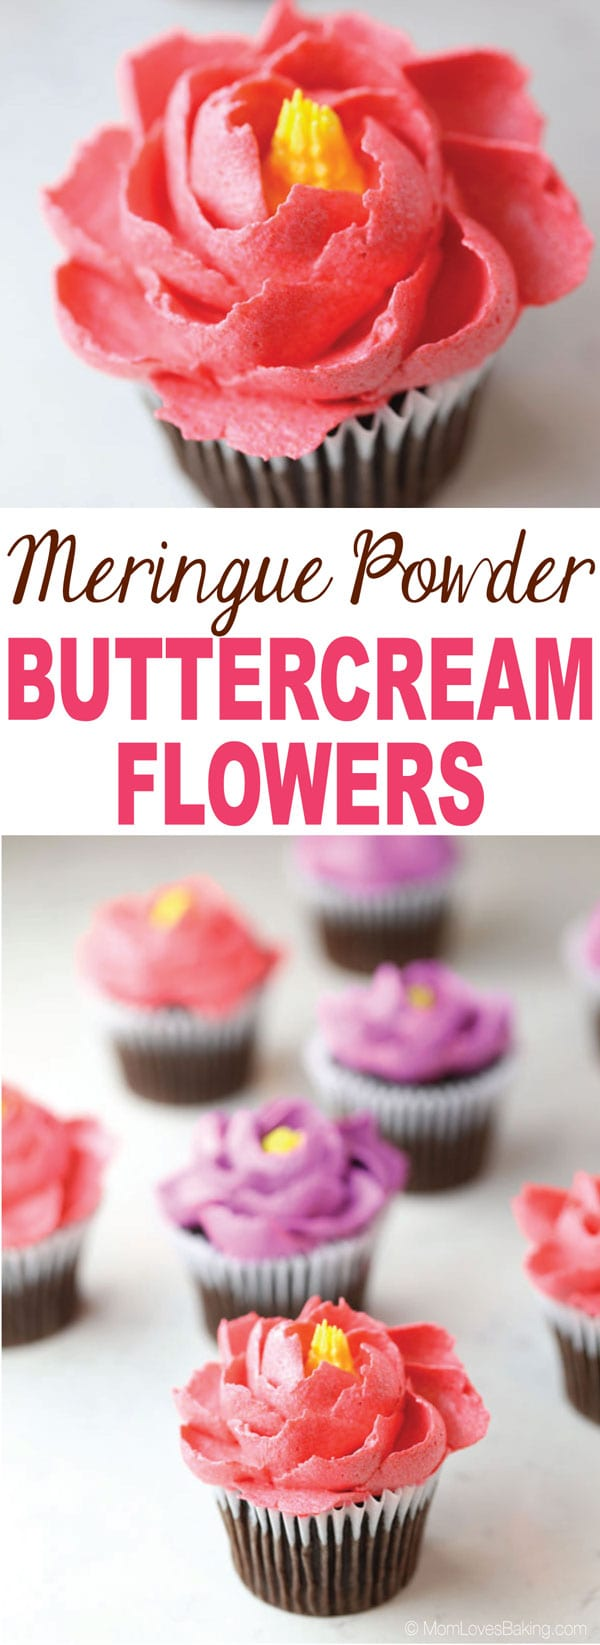 Meringue Powder Buttercream Flowers